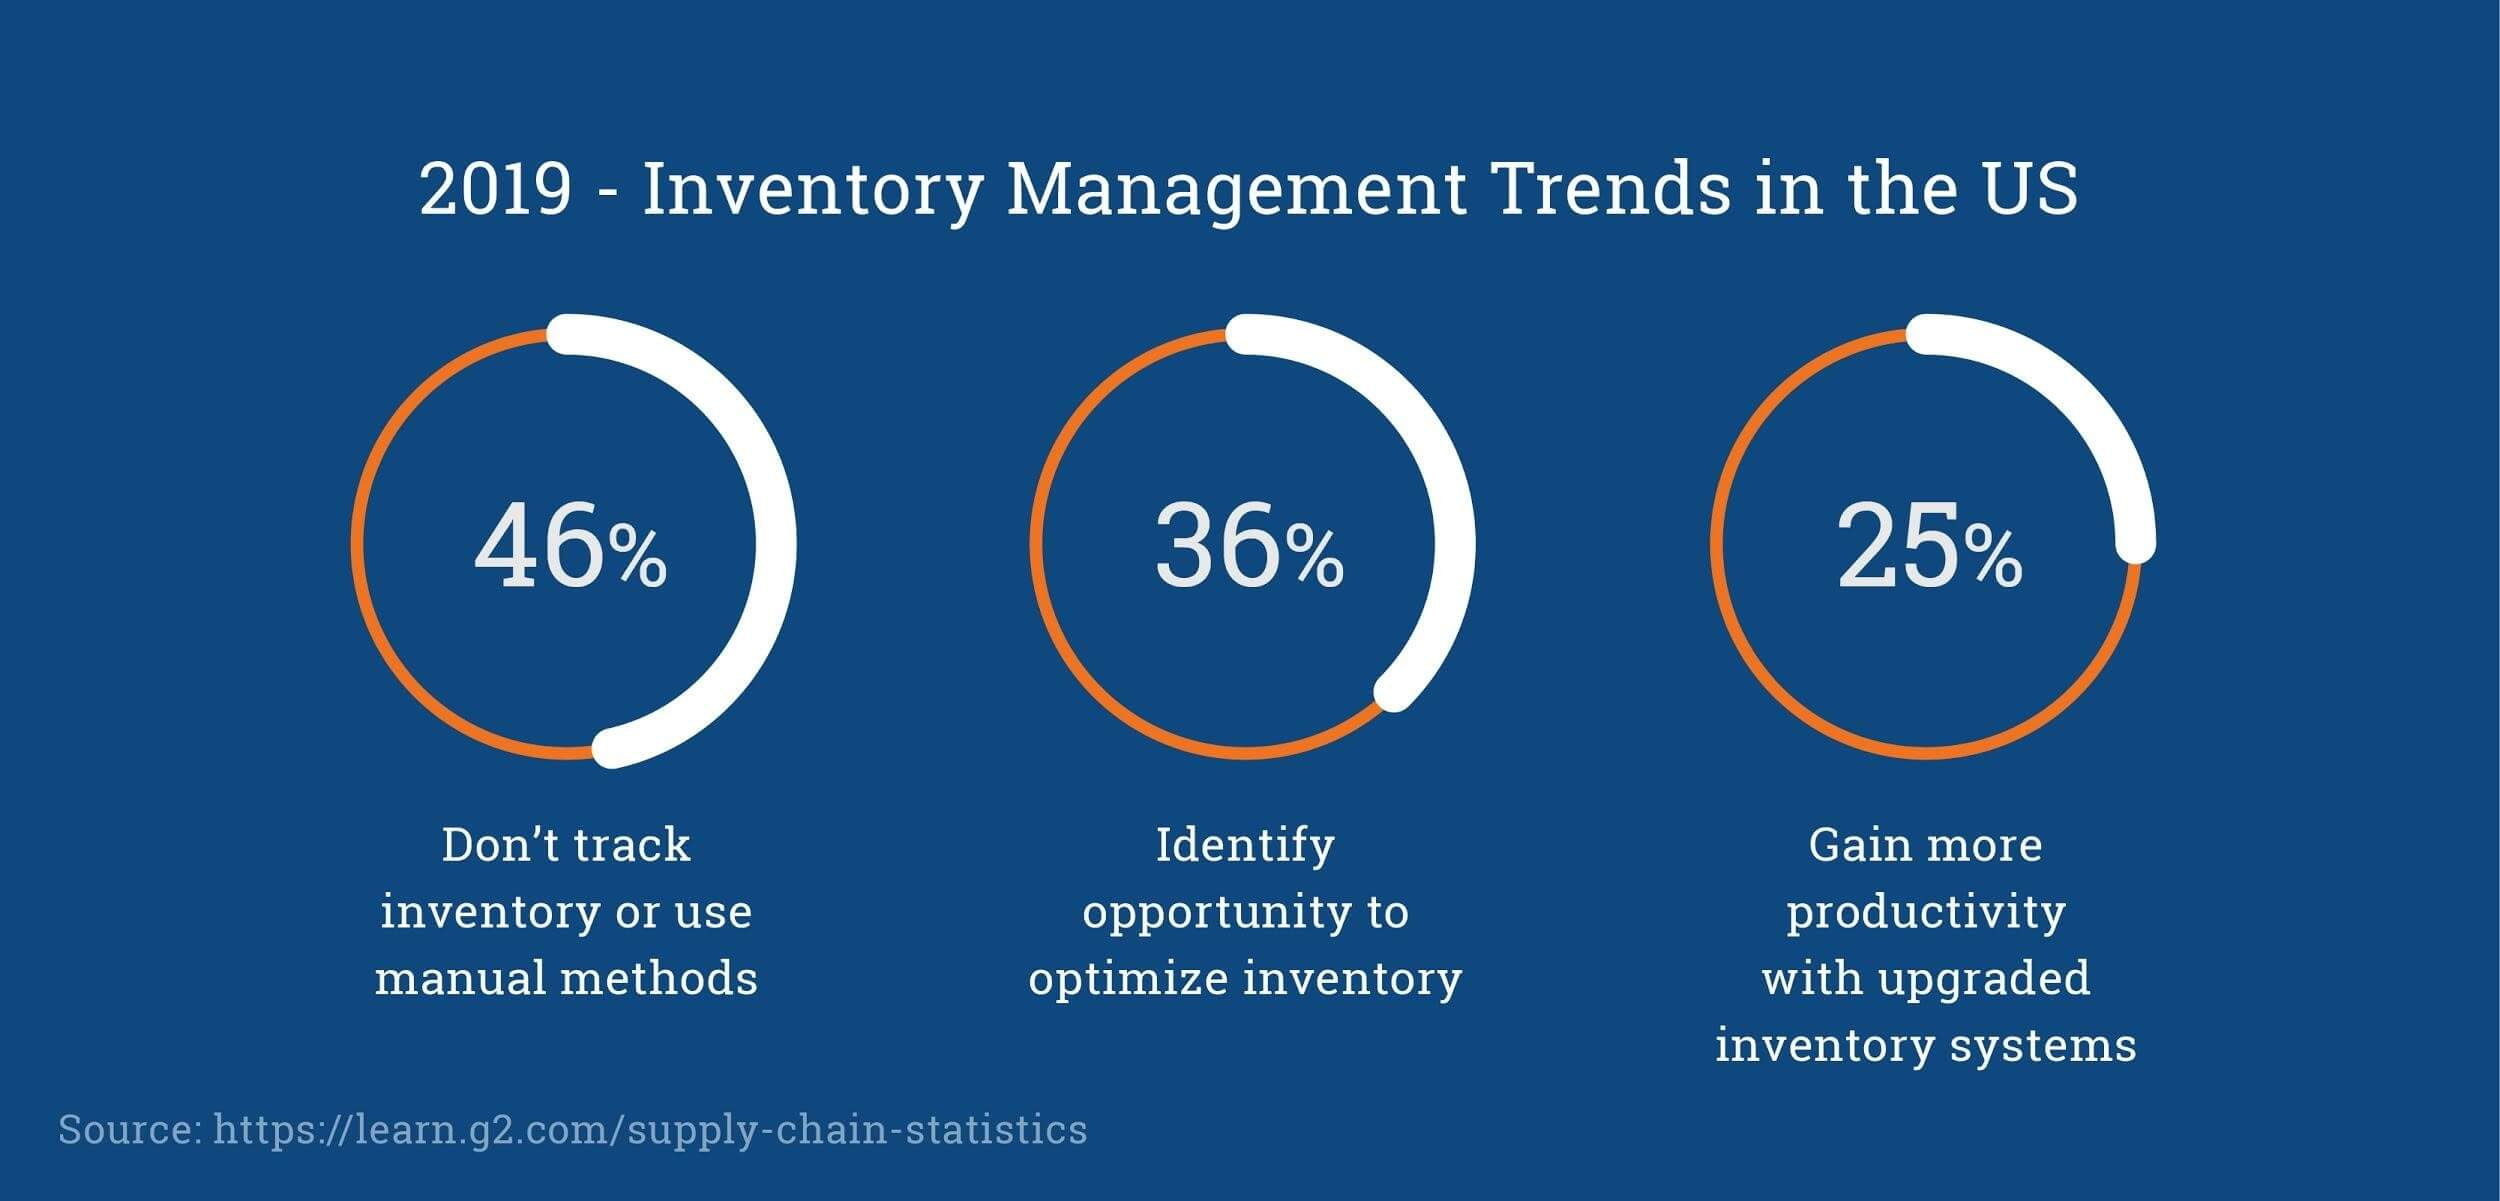 2019 Inventory Management Trends in the US